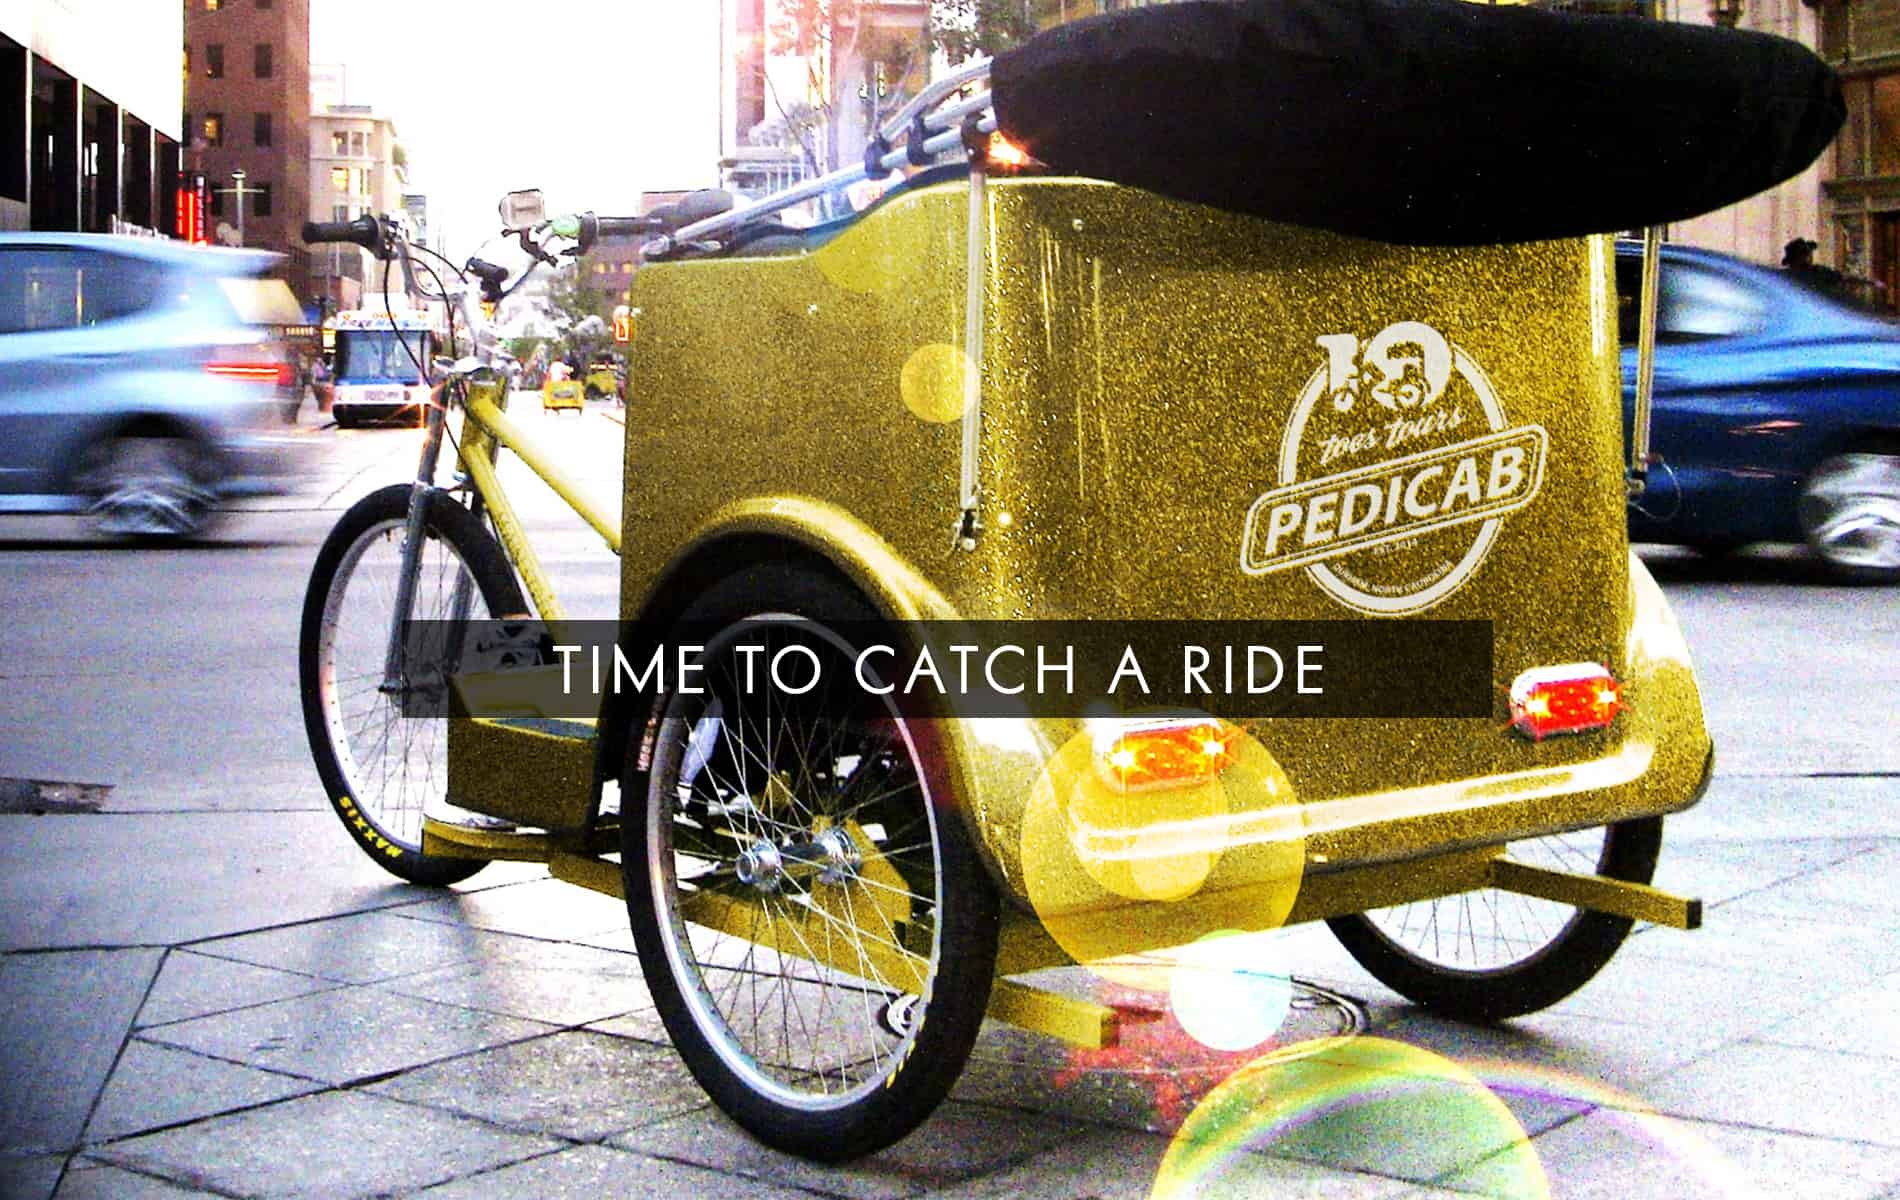 Ten Toes Tours pedicab service in Durham